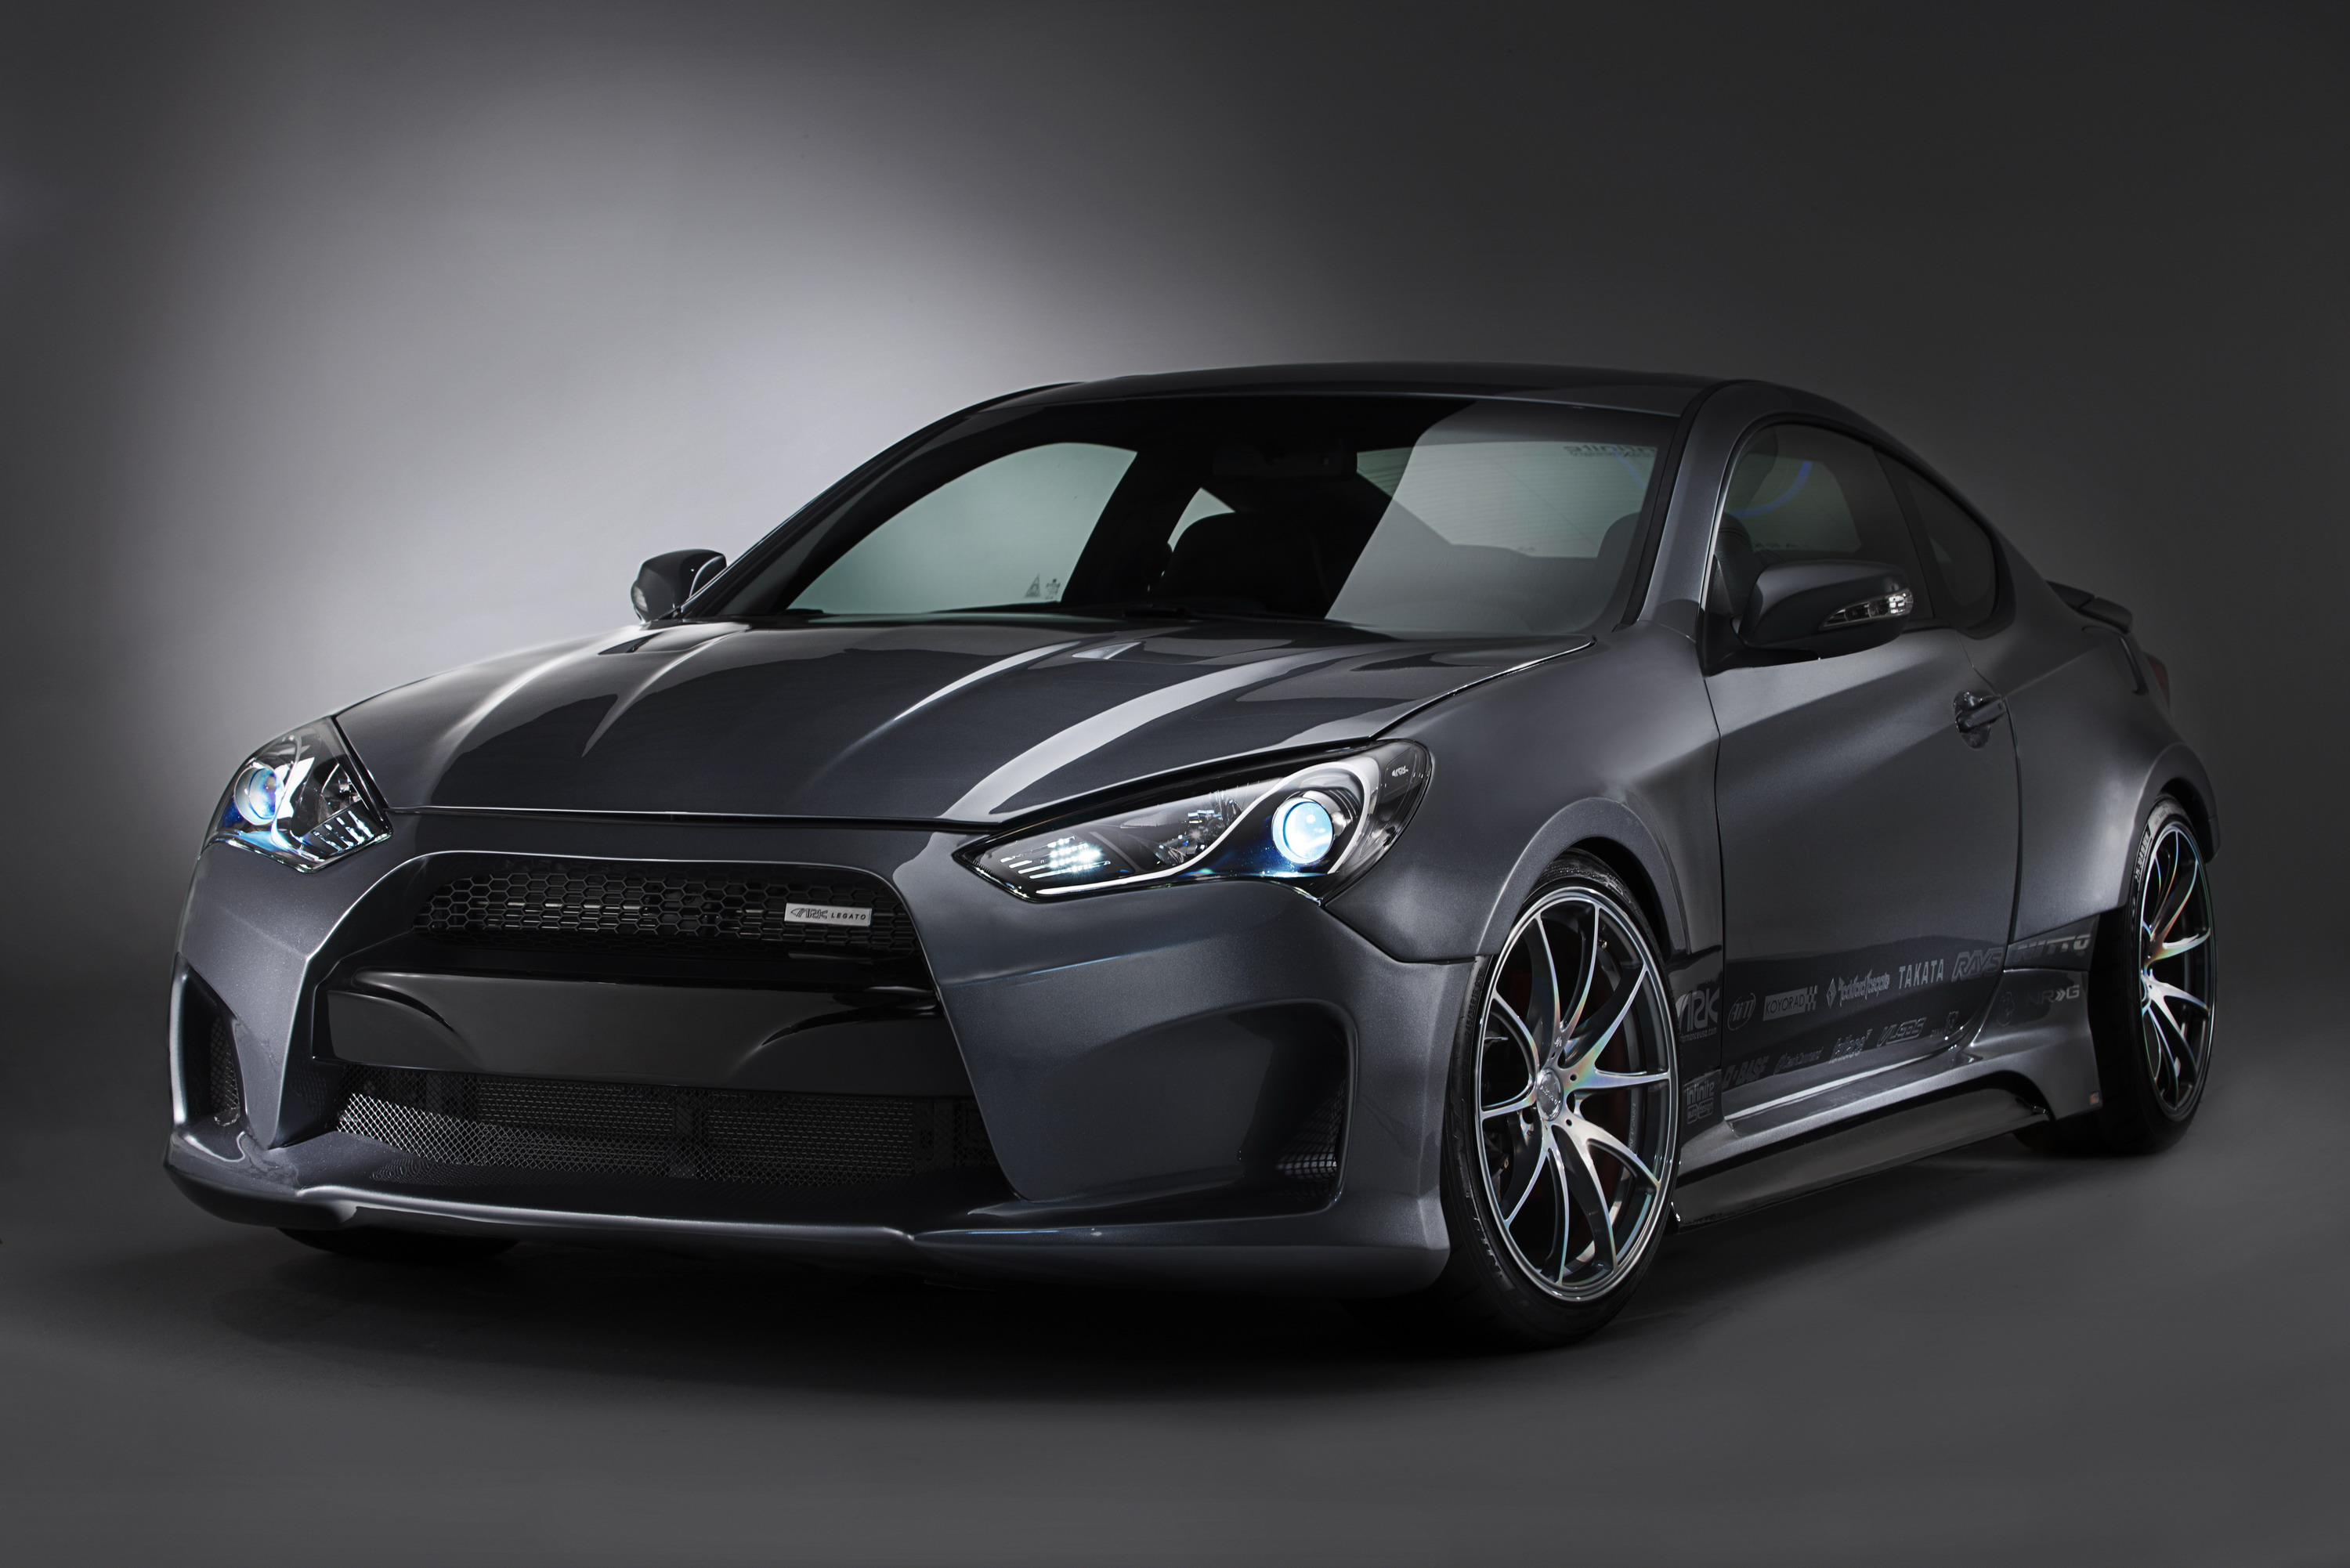 2013 hyundai genesis coupe legato concept by ark performance review top speed. Black Bedroom Furniture Sets. Home Design Ideas